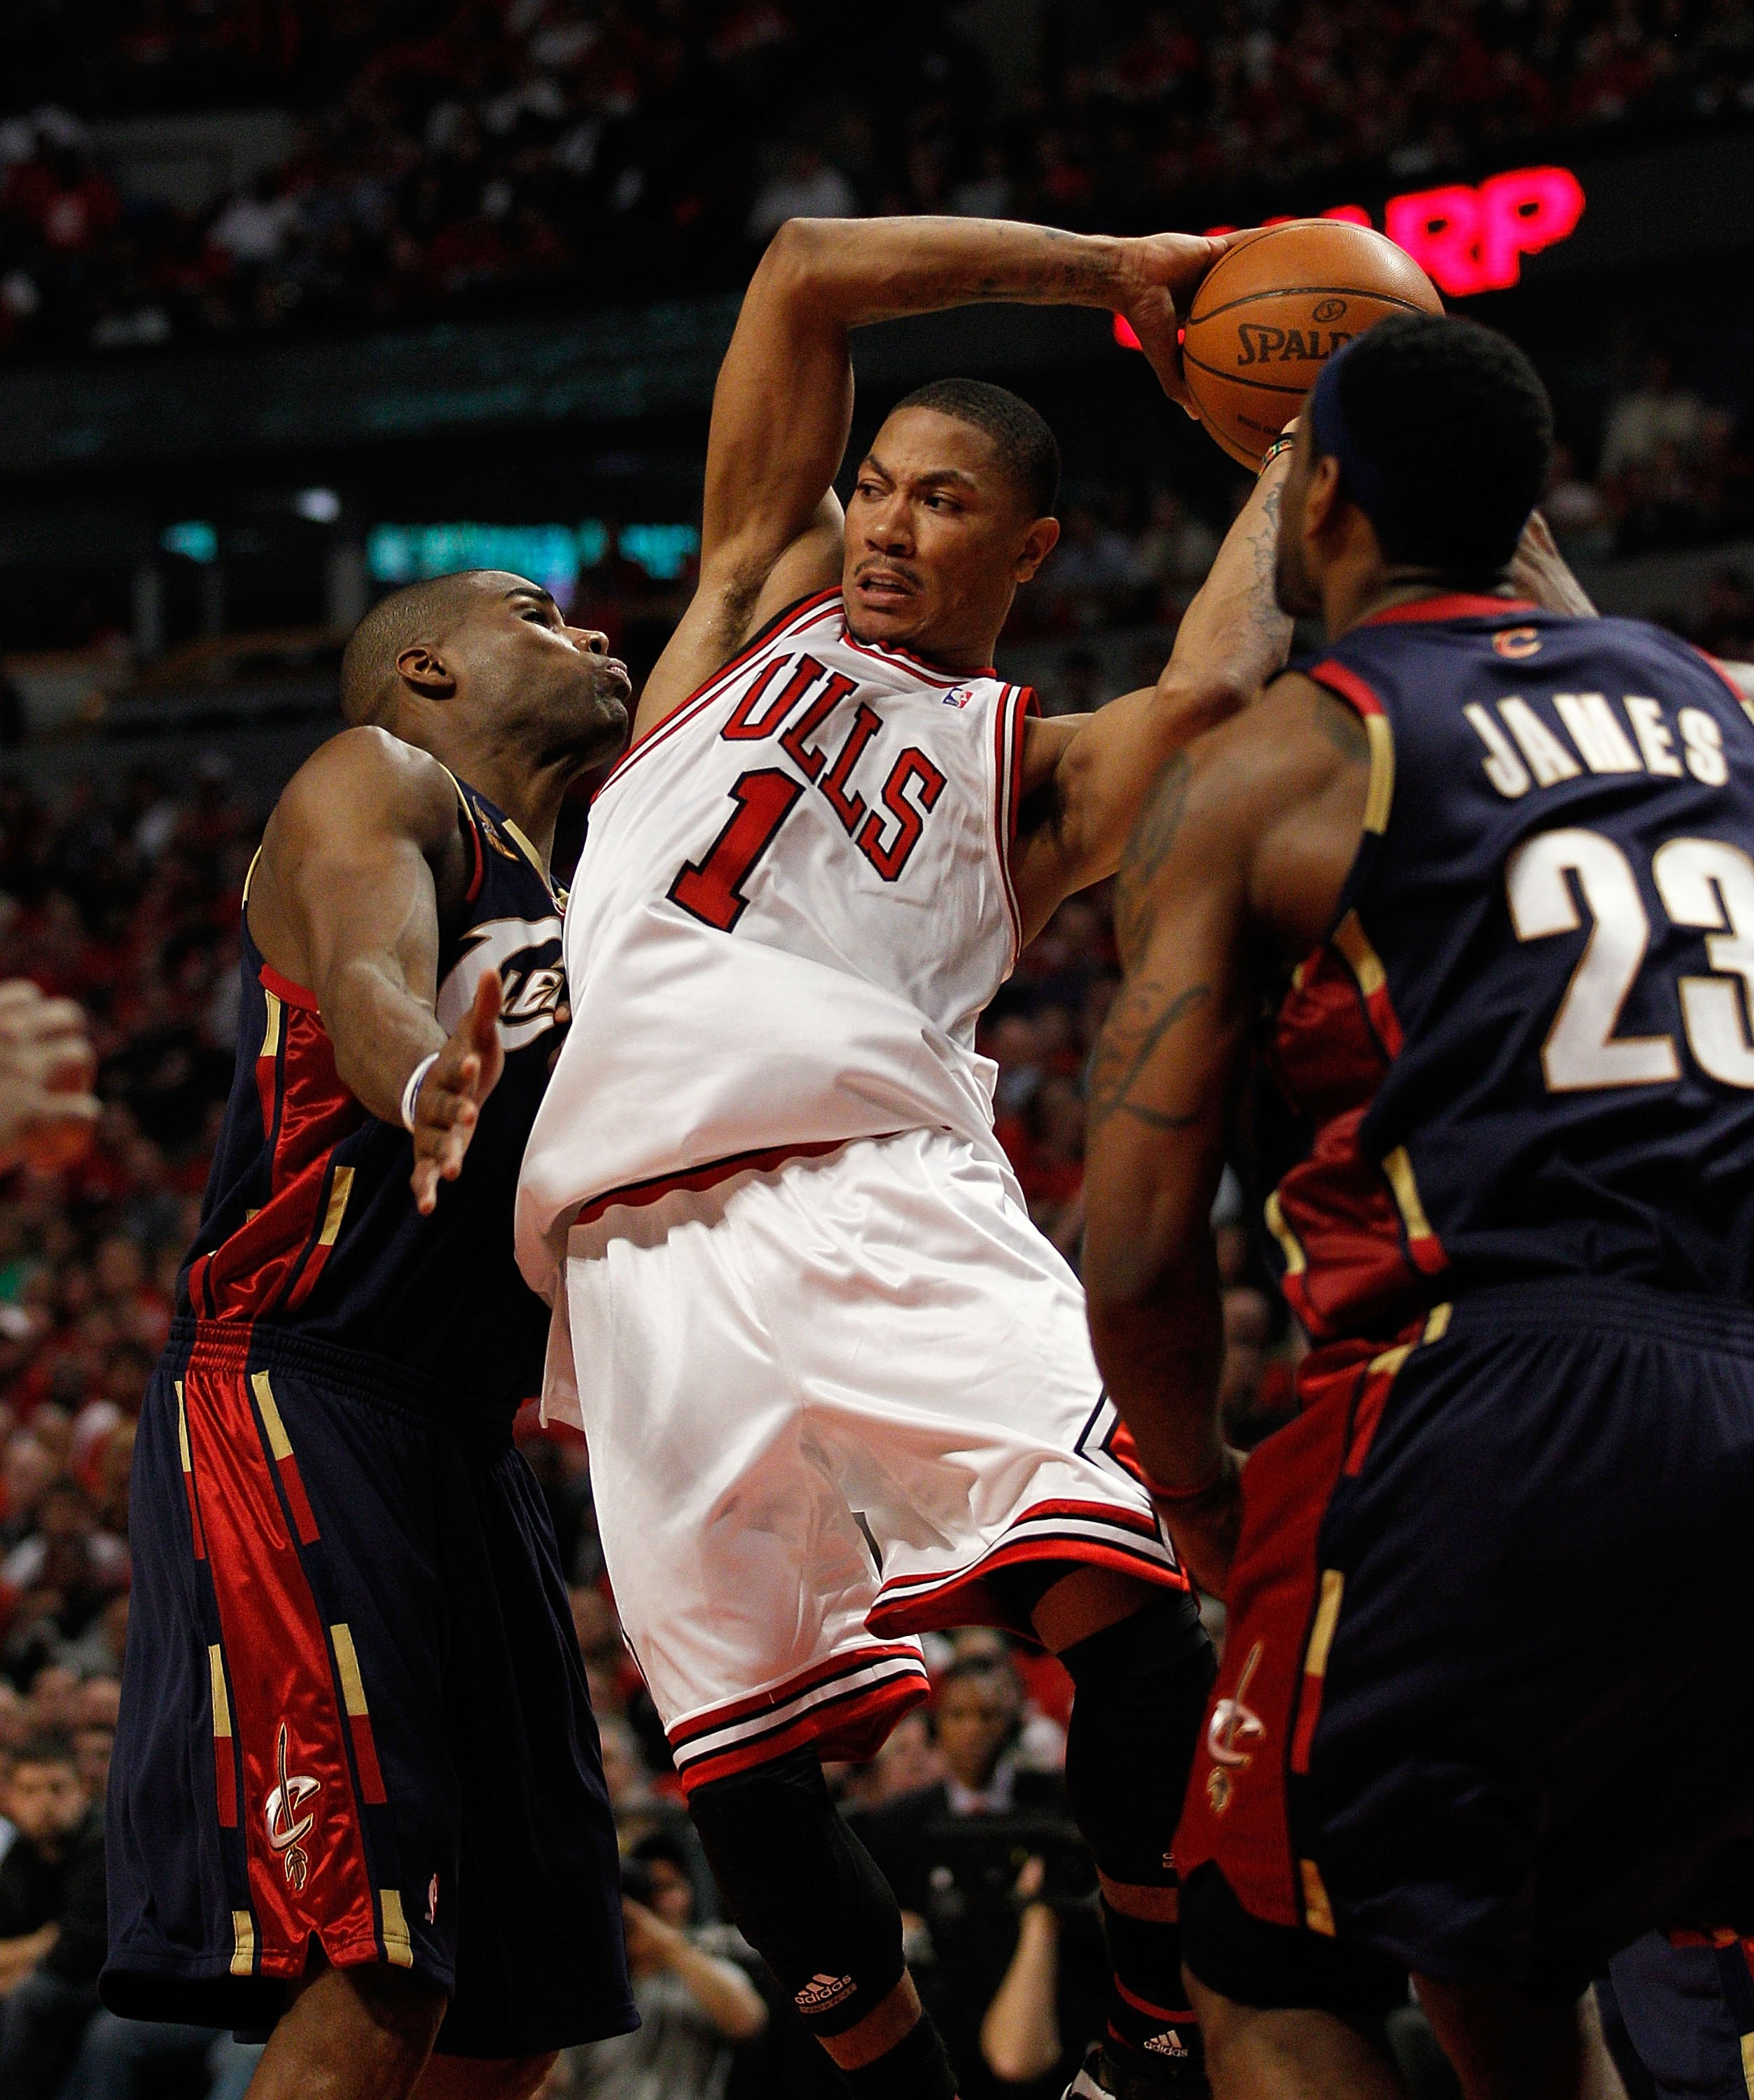 CHICAGO - APRIL 22: Derrick Rose #1 of the Chicago Bulls passes the ball between Antawn Jamison #4 and LeBron James #23 of the Cleveland Cavaliers in Game Three of the Eastern Conference Quarterfinals during the 2010 NBA Playoffs at the United Center on A